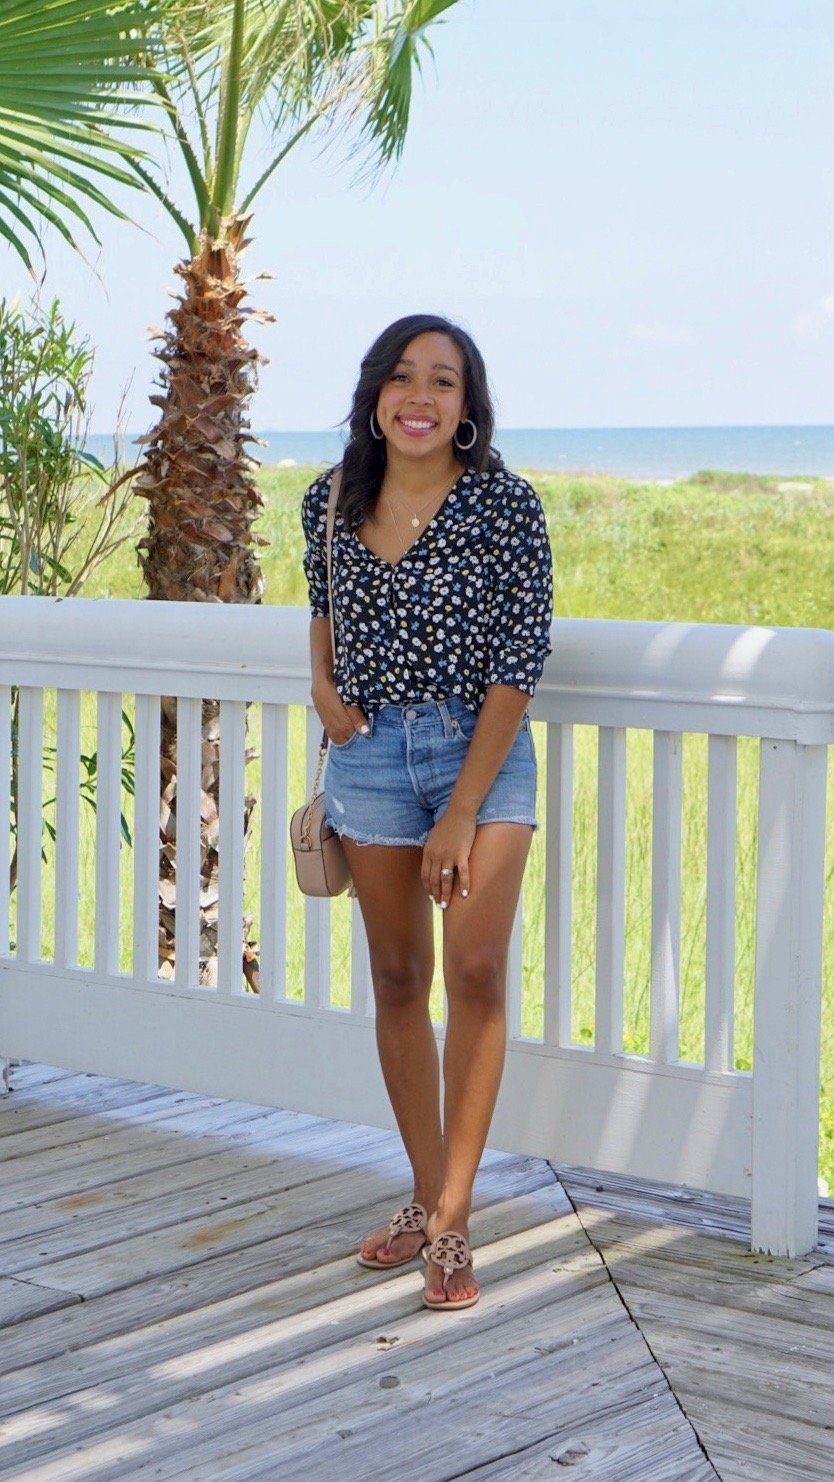 Trendy Thursday LinkUp: Six Different Ways to Wear Shorts this Summer